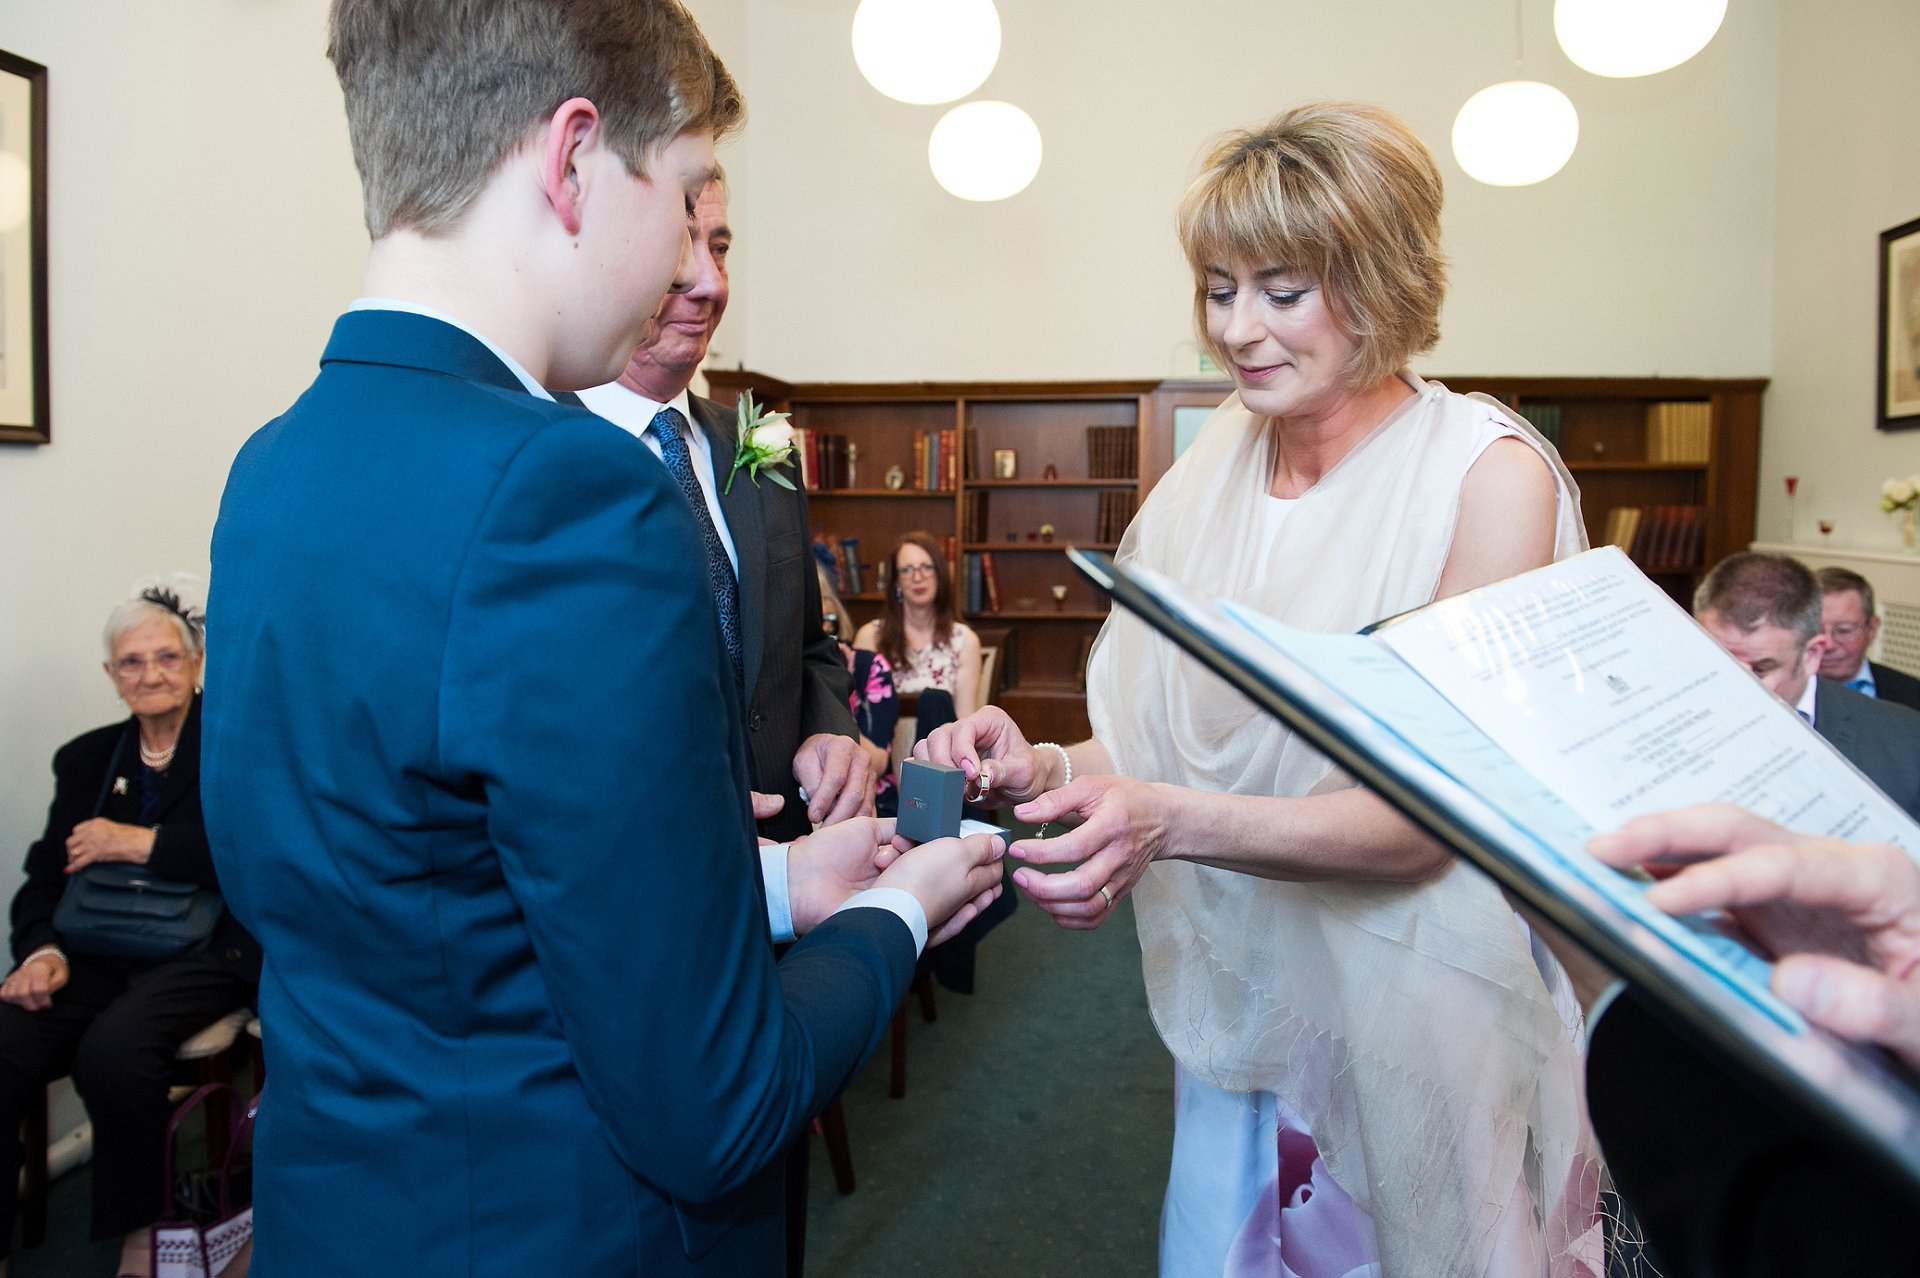 The best man hands over teh rings during this Westminster civil wedding ceremony